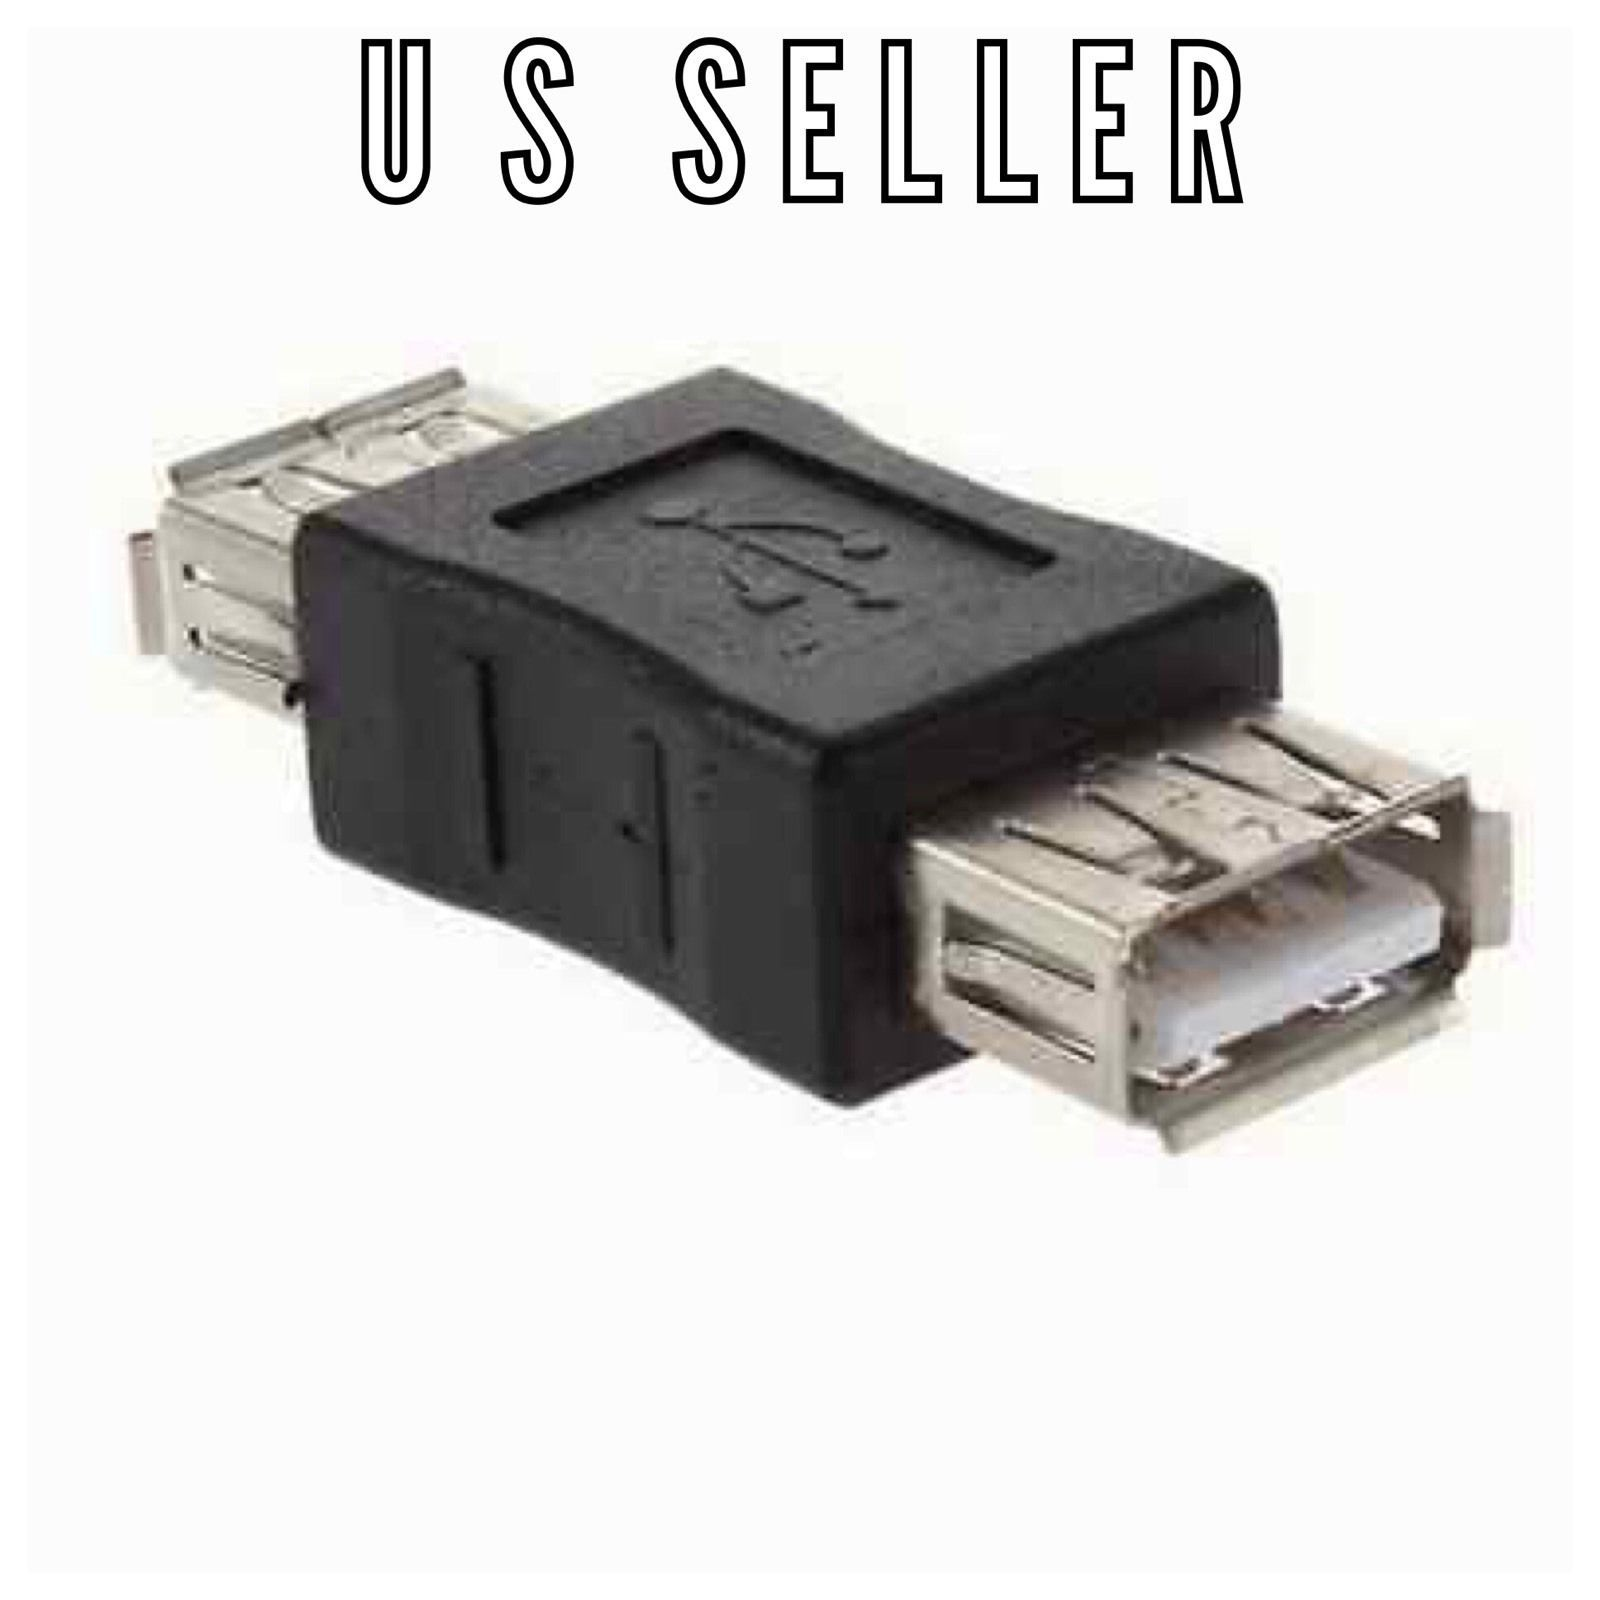 Standard USB 2.0 Type A Female to Female Extension Coupler Adapter Converter A5